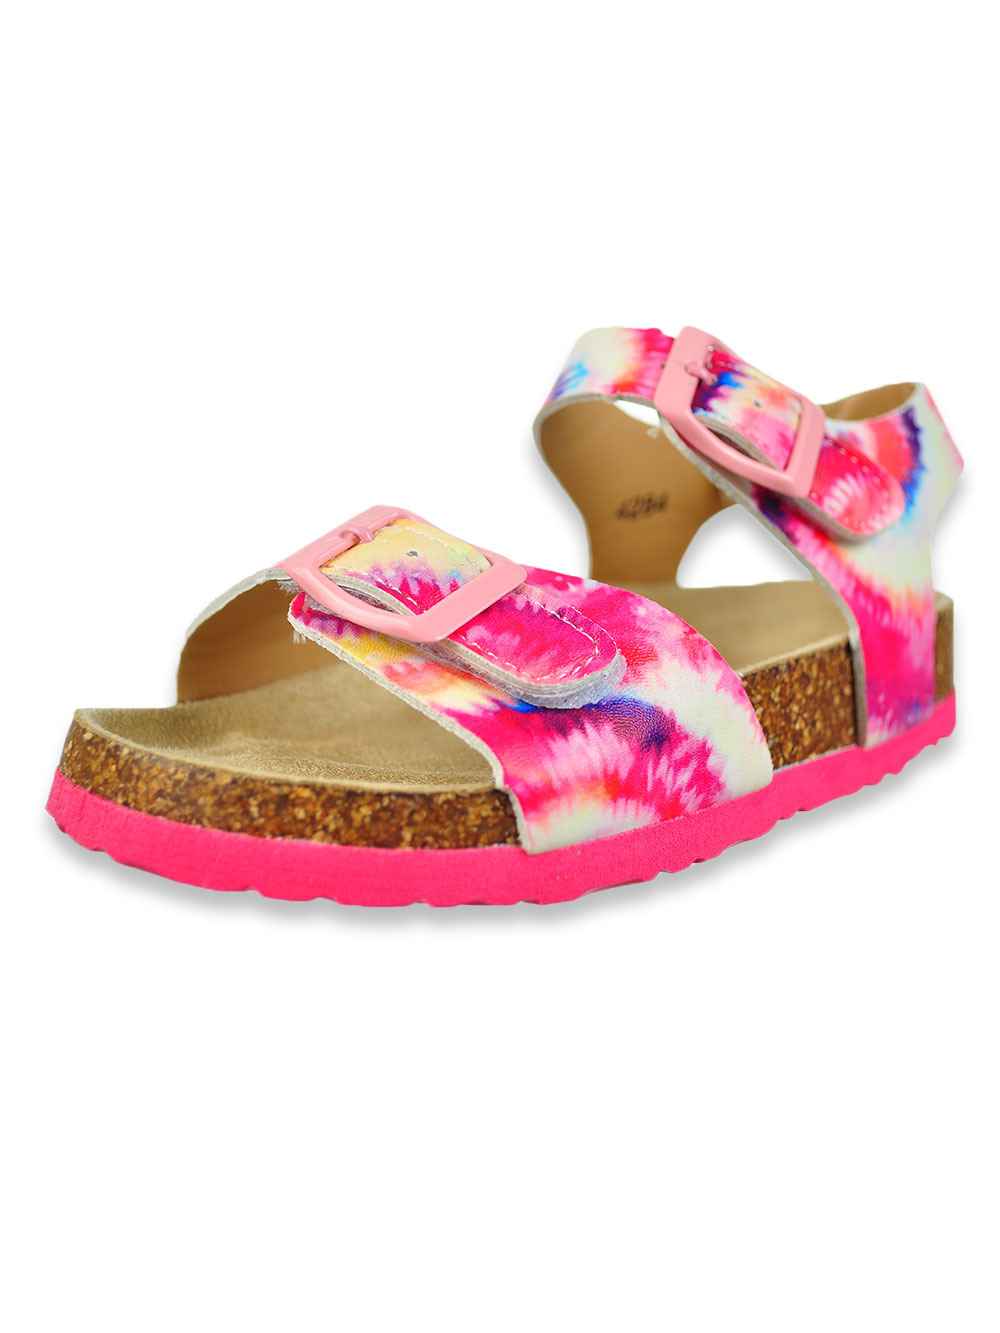 Girls White and Multicolor Sandals